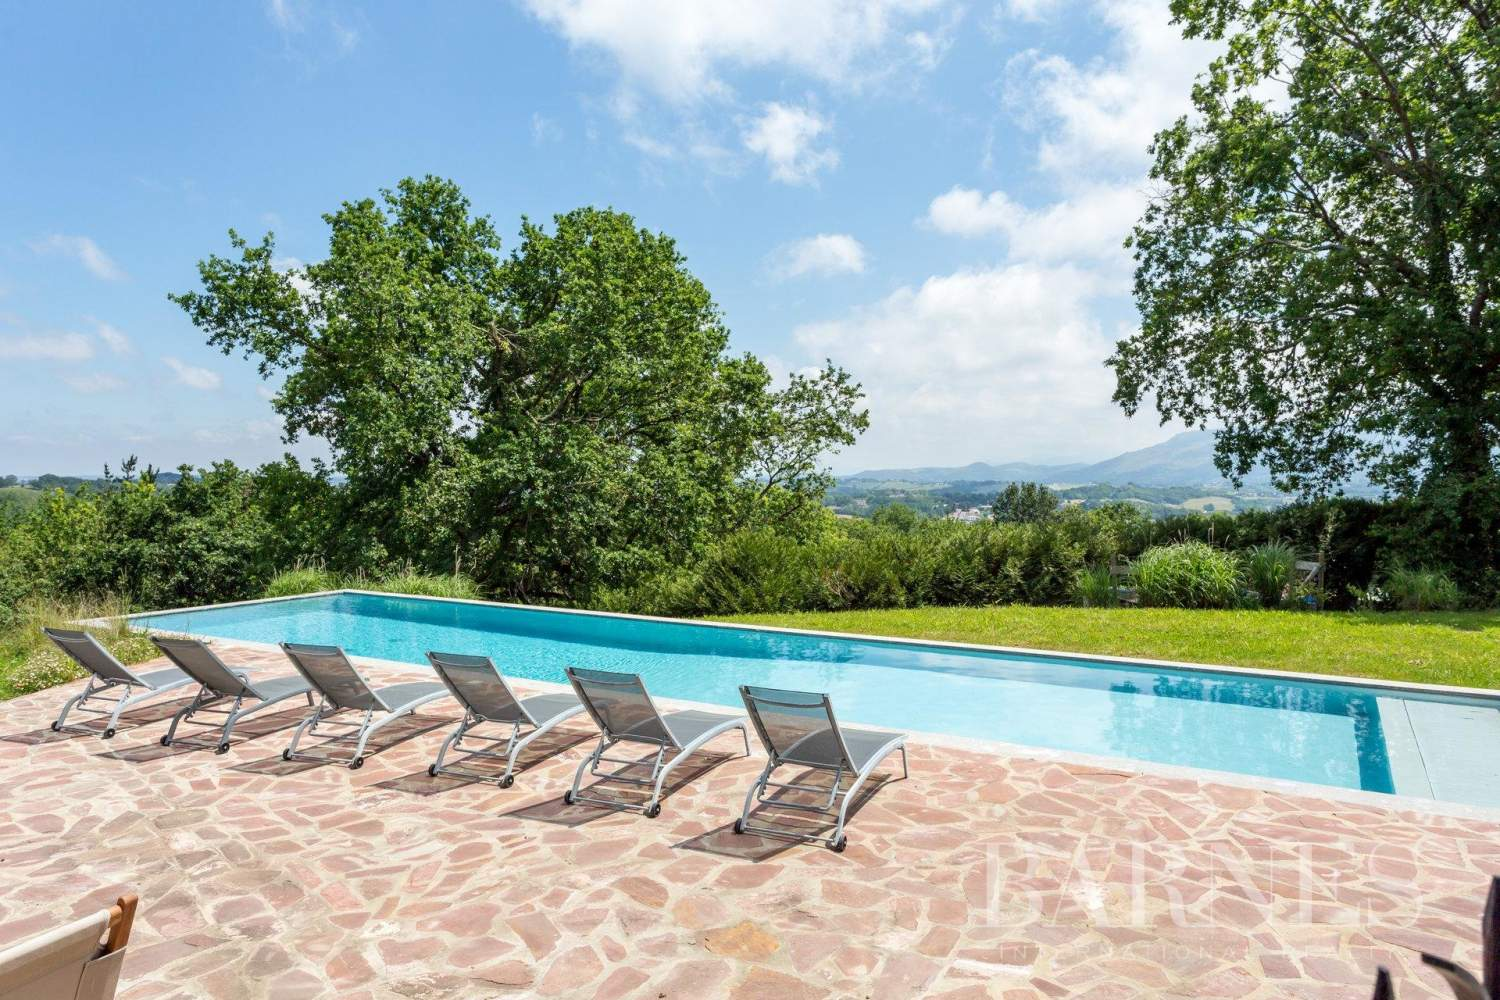 URRUGNE, LARGE HOUSE WITH A POOL AND MOUNTAINS VIEW, UP TO 17 PEOPLE picture 2